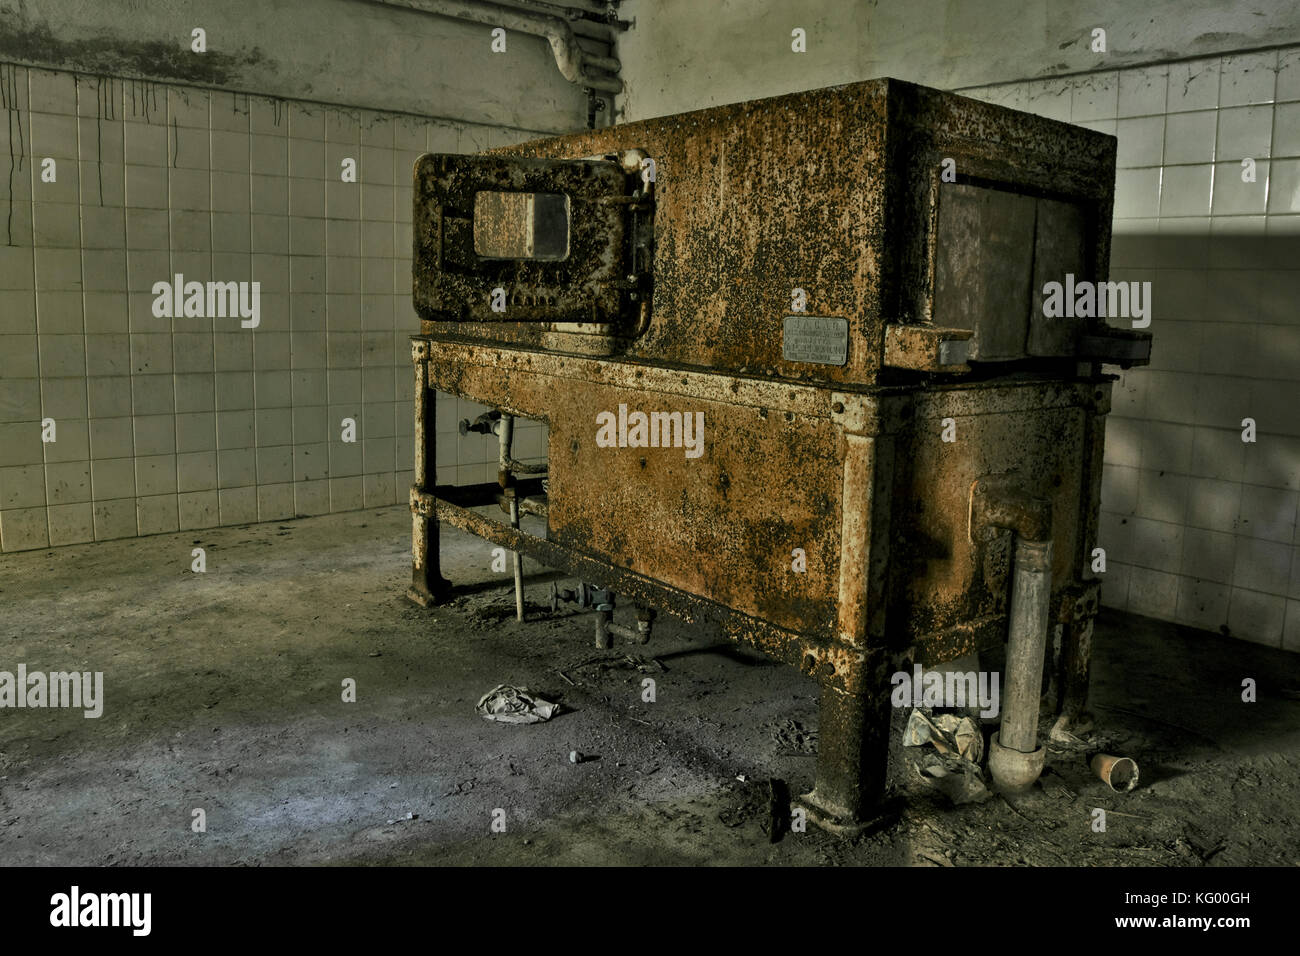 an old and rusty machinery in a room of an abandoned psychiatric hospital - Stock Image